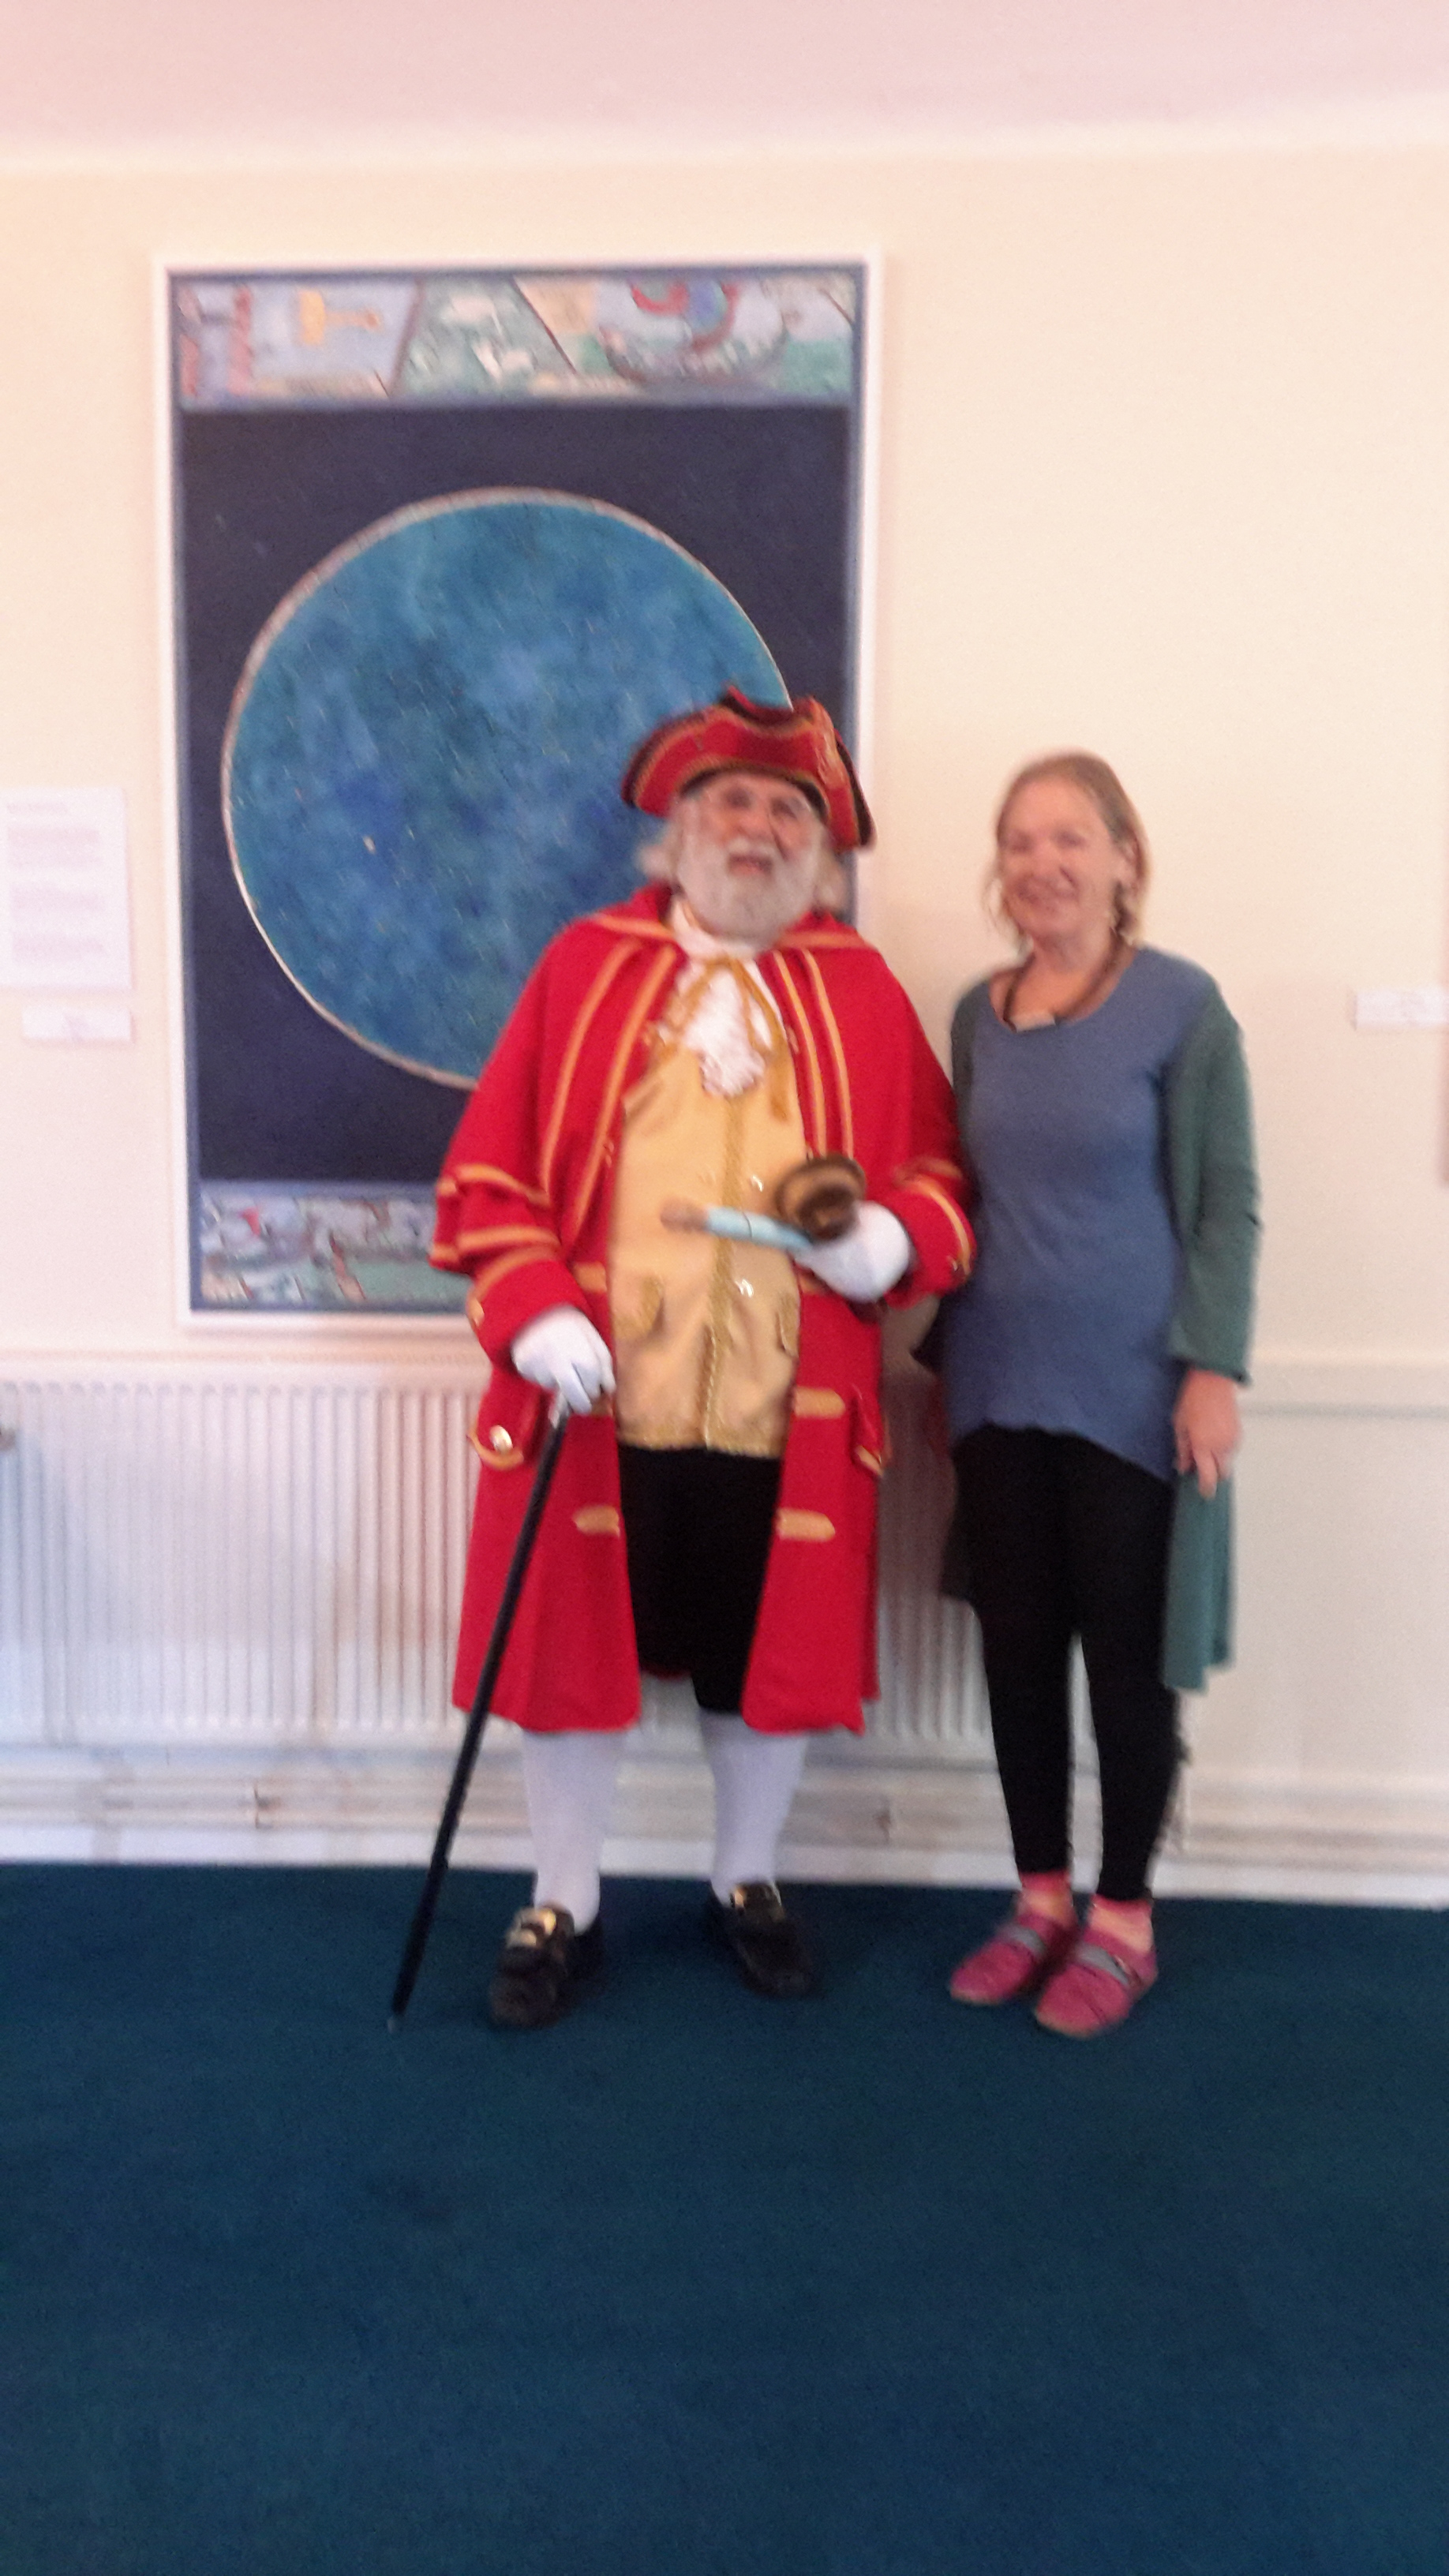 Town Cryer at exhibition